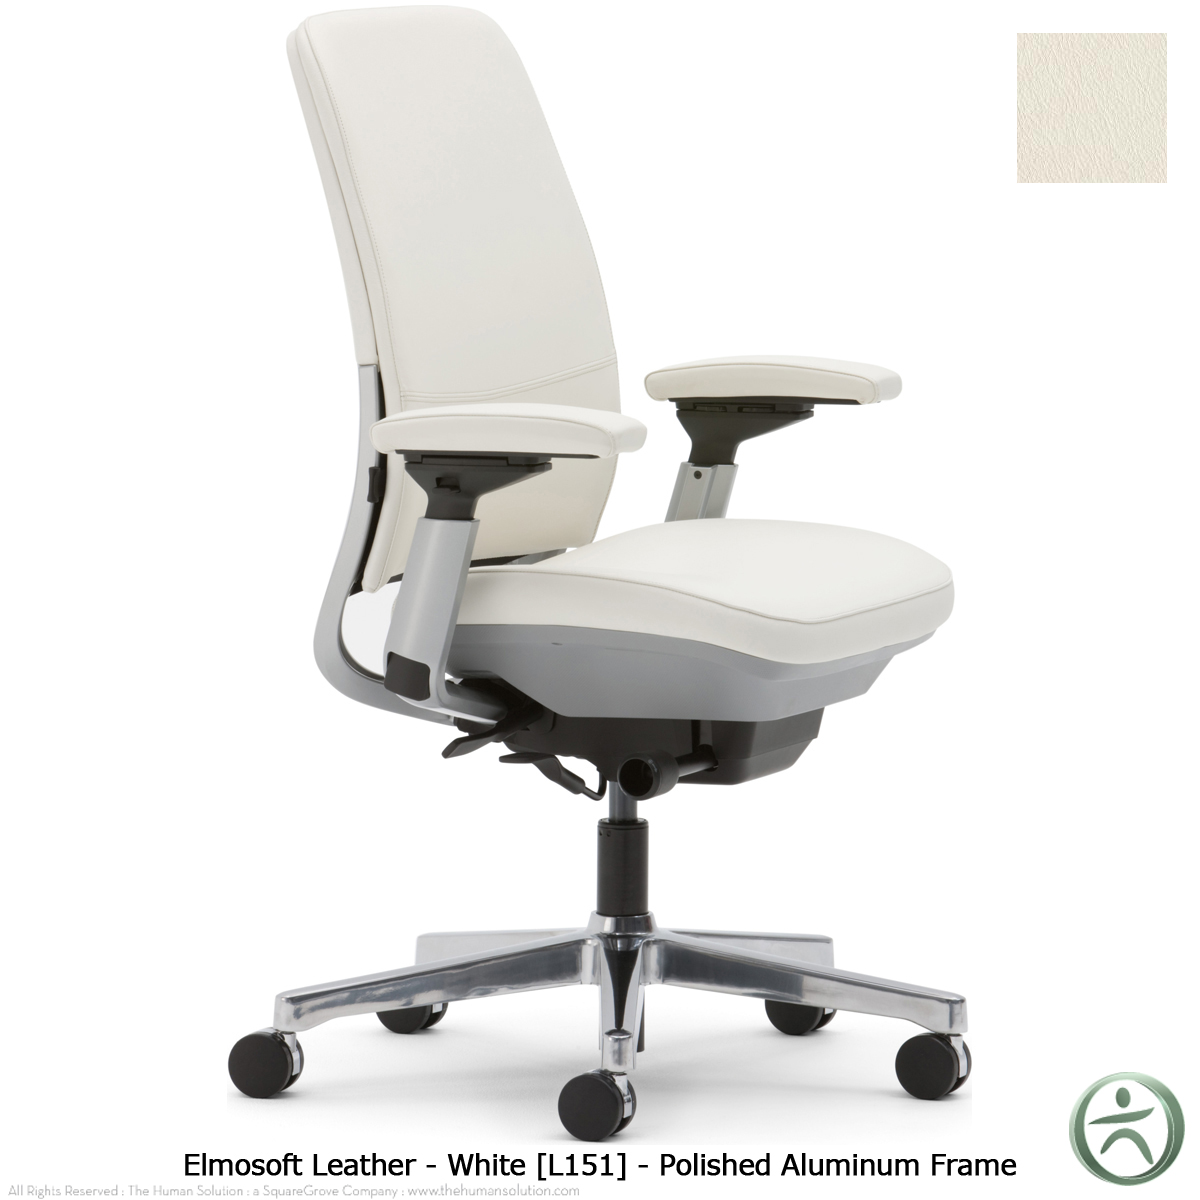 office chairs with adjustable arms with Steelcase Amia Leather Office Chair on Matias Ergo Pro Ergonomic Keyboard Review as well Jordan Visitor Chair likewise Ergocentric Mycentric Ergonomic Office Chair besides 3862375 in addition Humanscale Diffrient World Mesh Chair.